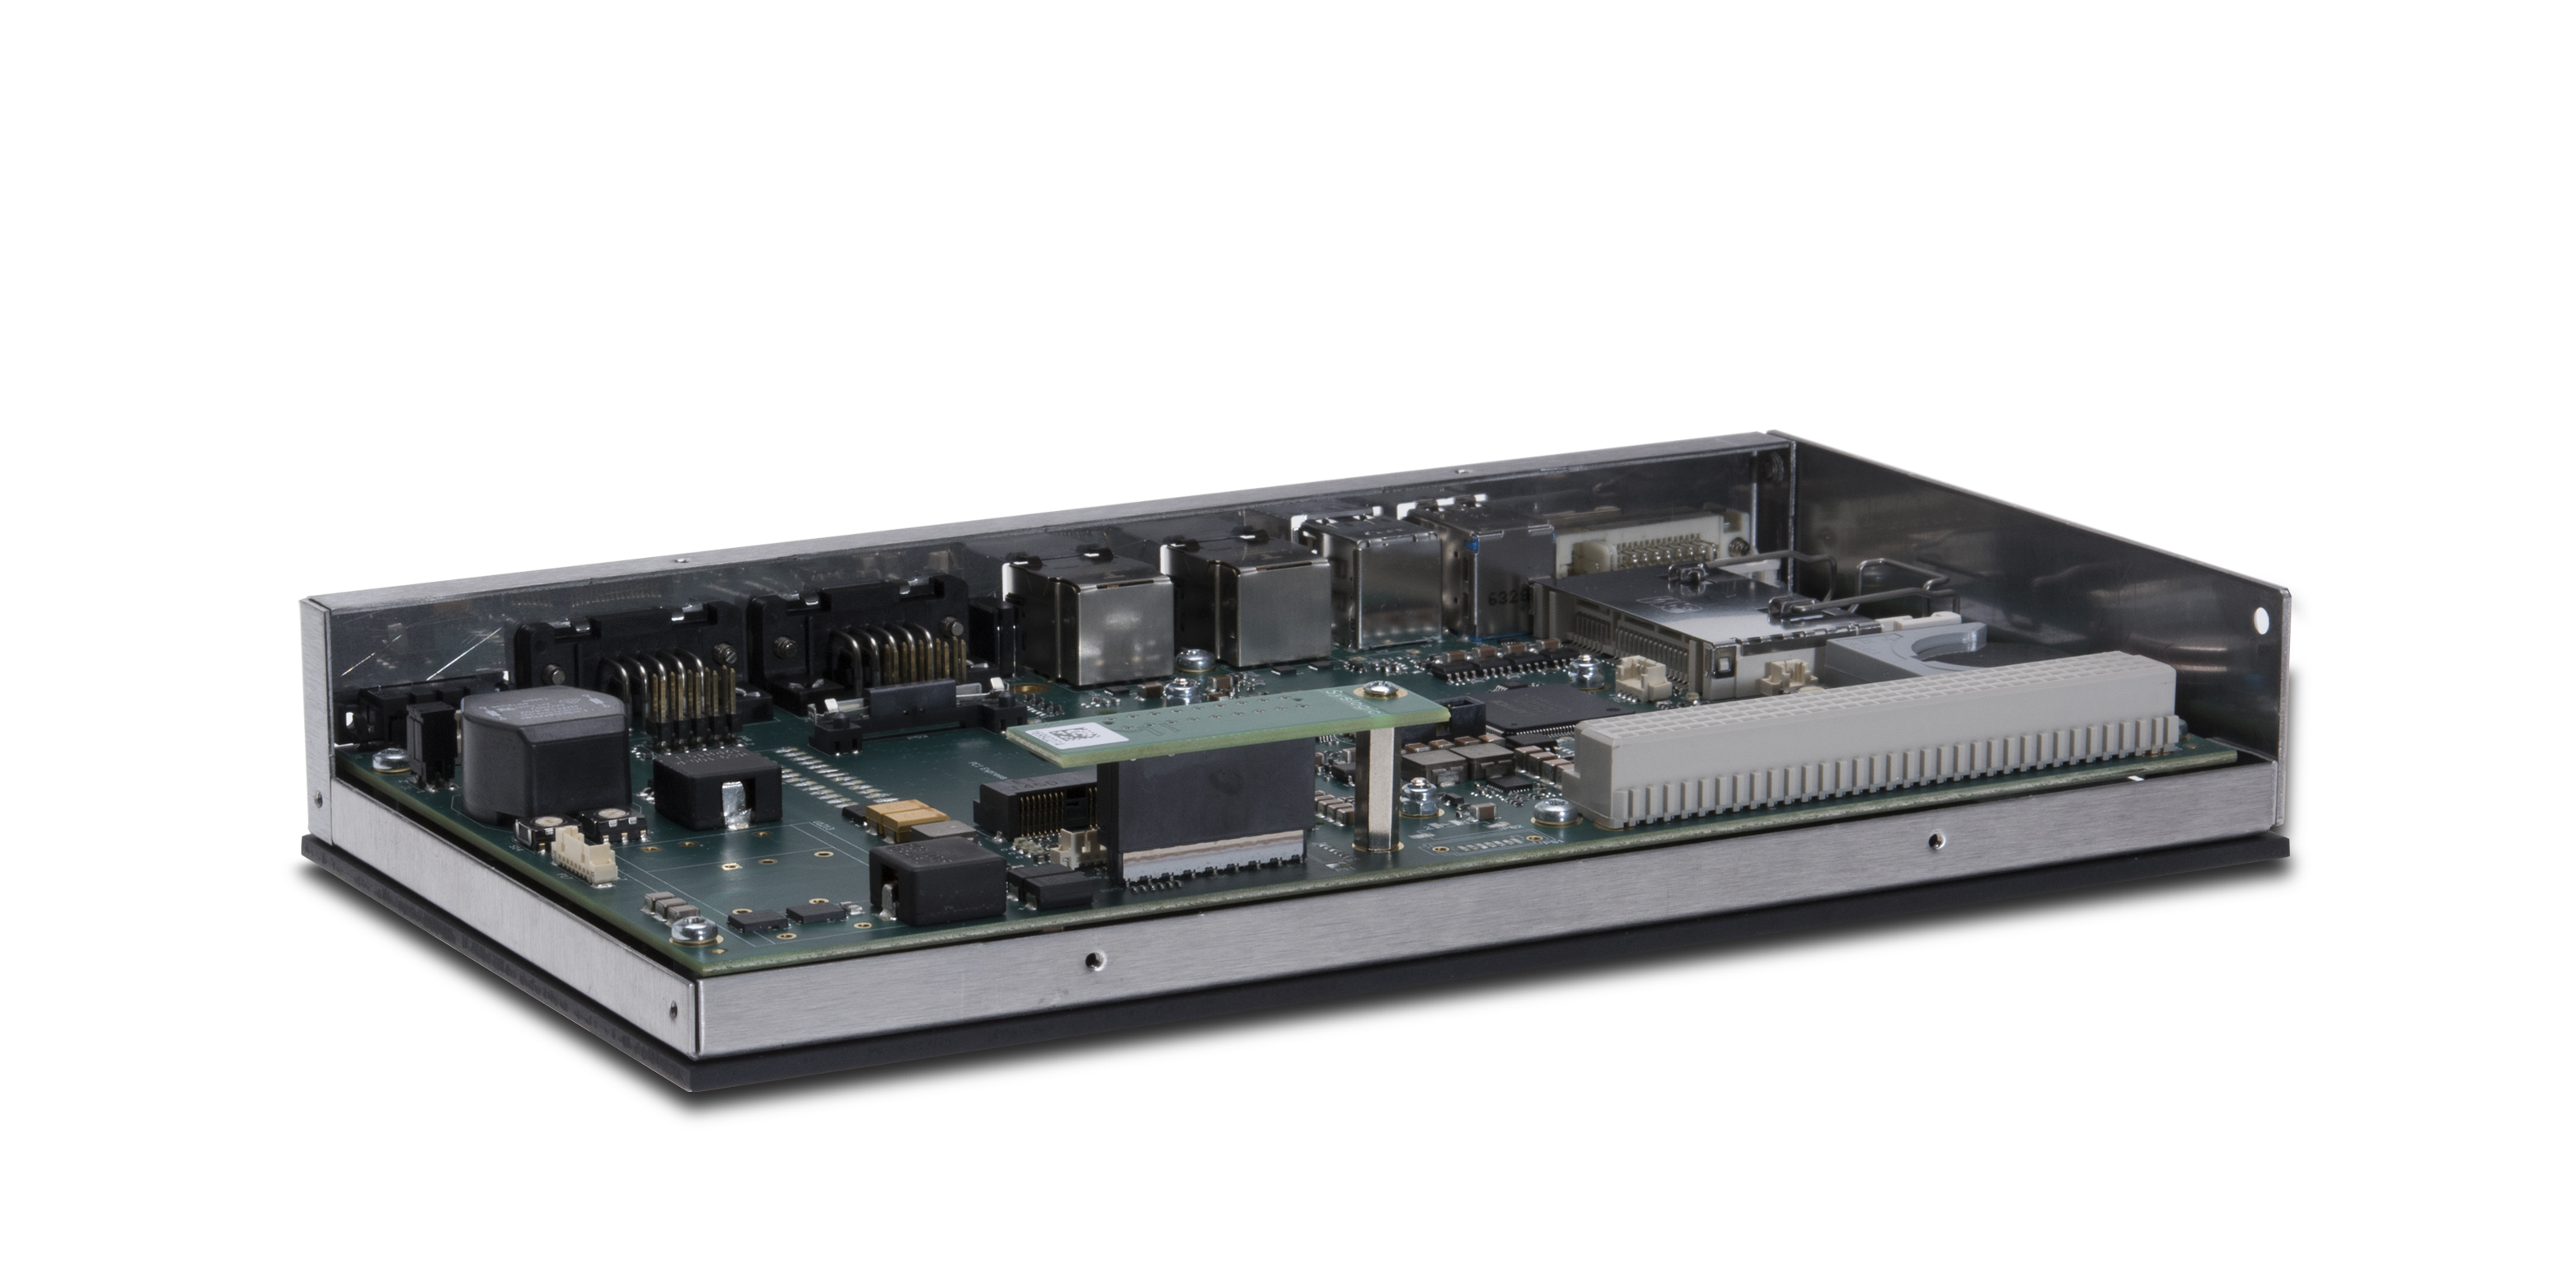 Syslogic Embedded Box PC with integrated Trusted Platform Module